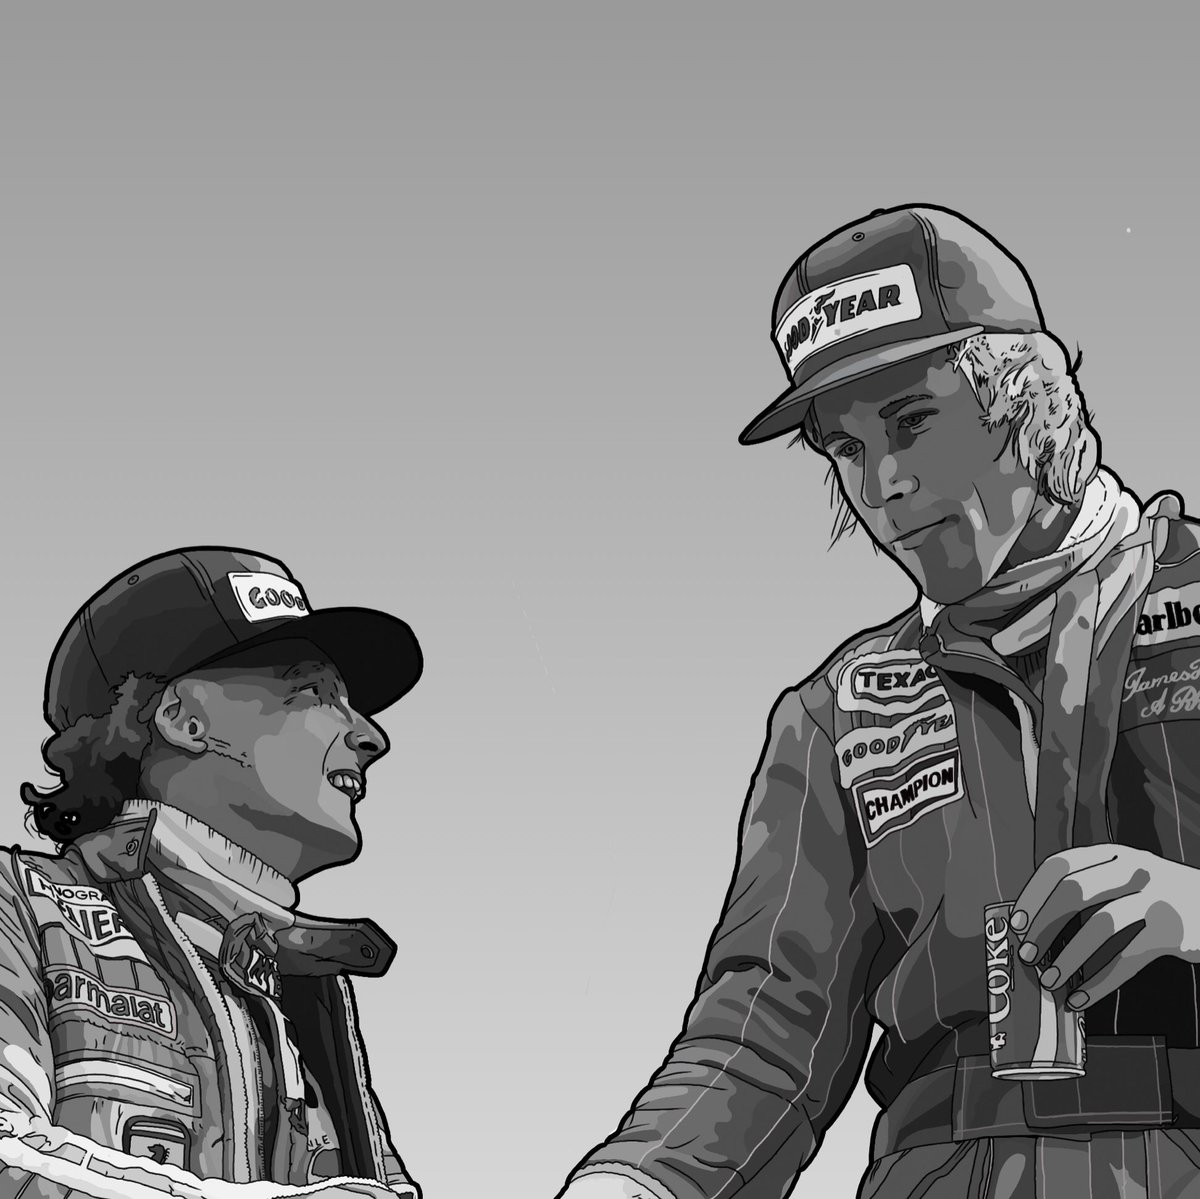 Following the recent passing of Nikki Lauda, I decided to have a go and draw him with James Hunt. I hope you enjoy it http://Instagram.com/dorsetshireboy #NikkiLauda #JamesHunt #Rush #F1 #FormulaOne #Formula1 #Fanart #Tribute